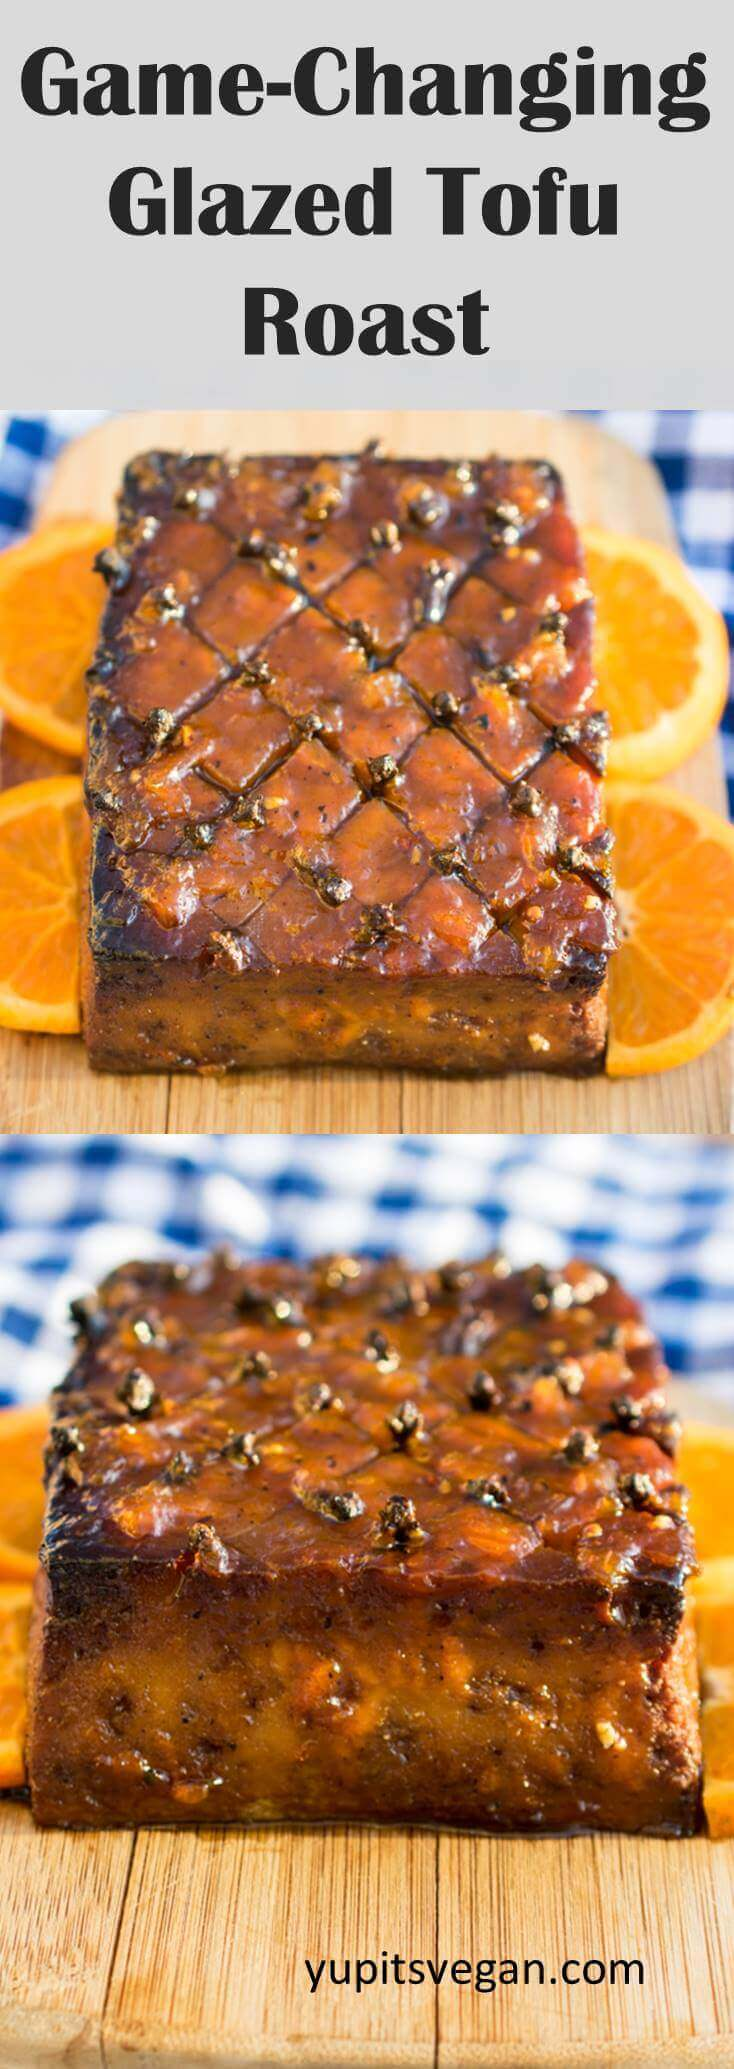 Glazed Tofu Roast | A marinated baked tofu centerpiece with orange glaze. This version of vegan ham is great for Thanksgiving, Christmas, or Easter. Naturally vegetarian, vegan and gluten-free.